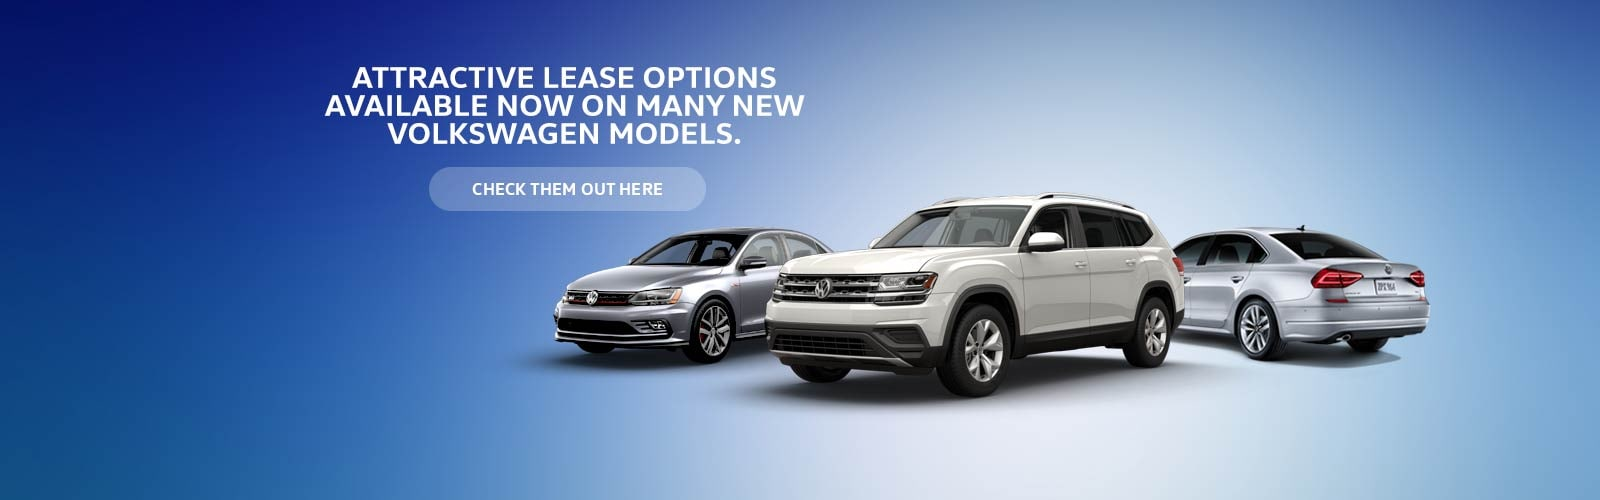 volkswagen golf for less new revamped more leasing blog vehicle first offers